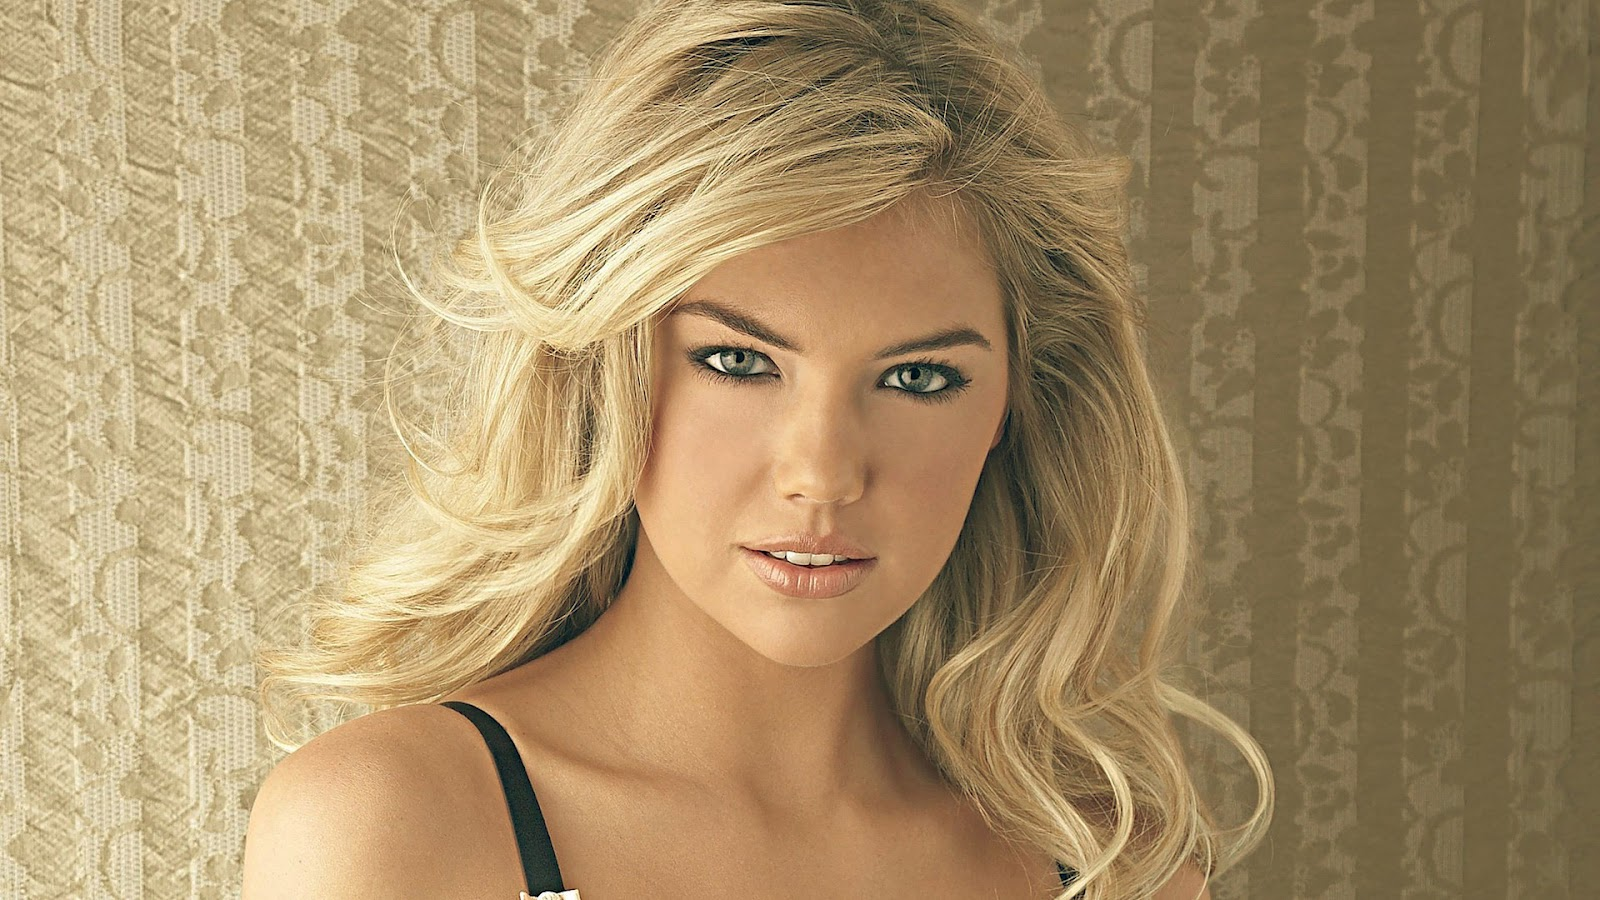 Kate Upton Hd Wallpaper – Wallpaper 21 - cover model kate upton wallpapers